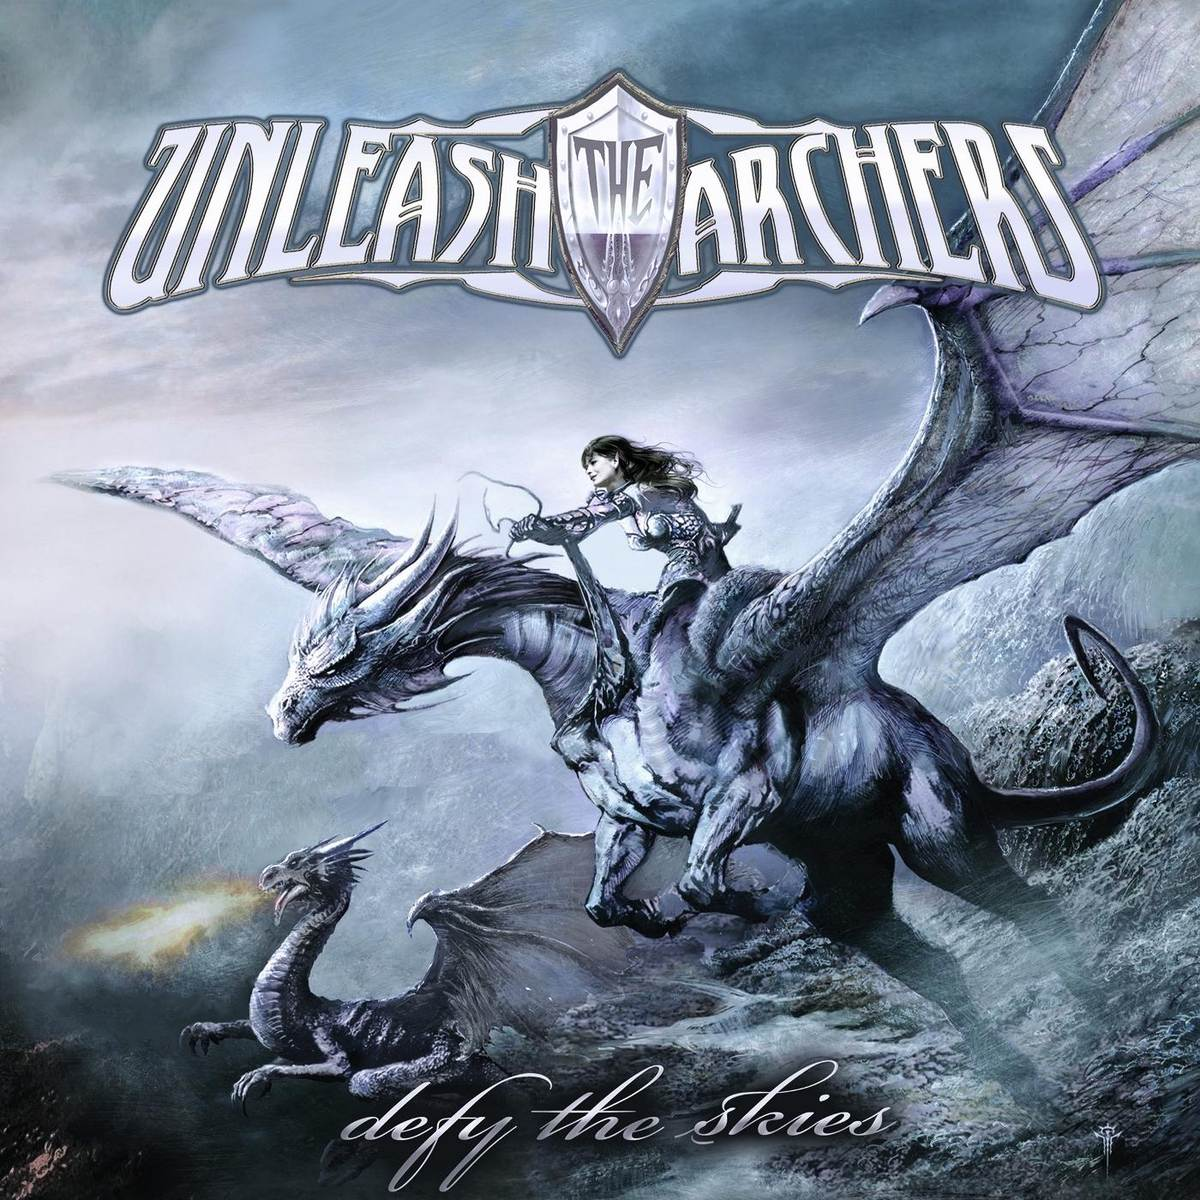 Unleash the Archers - Defy the Skies